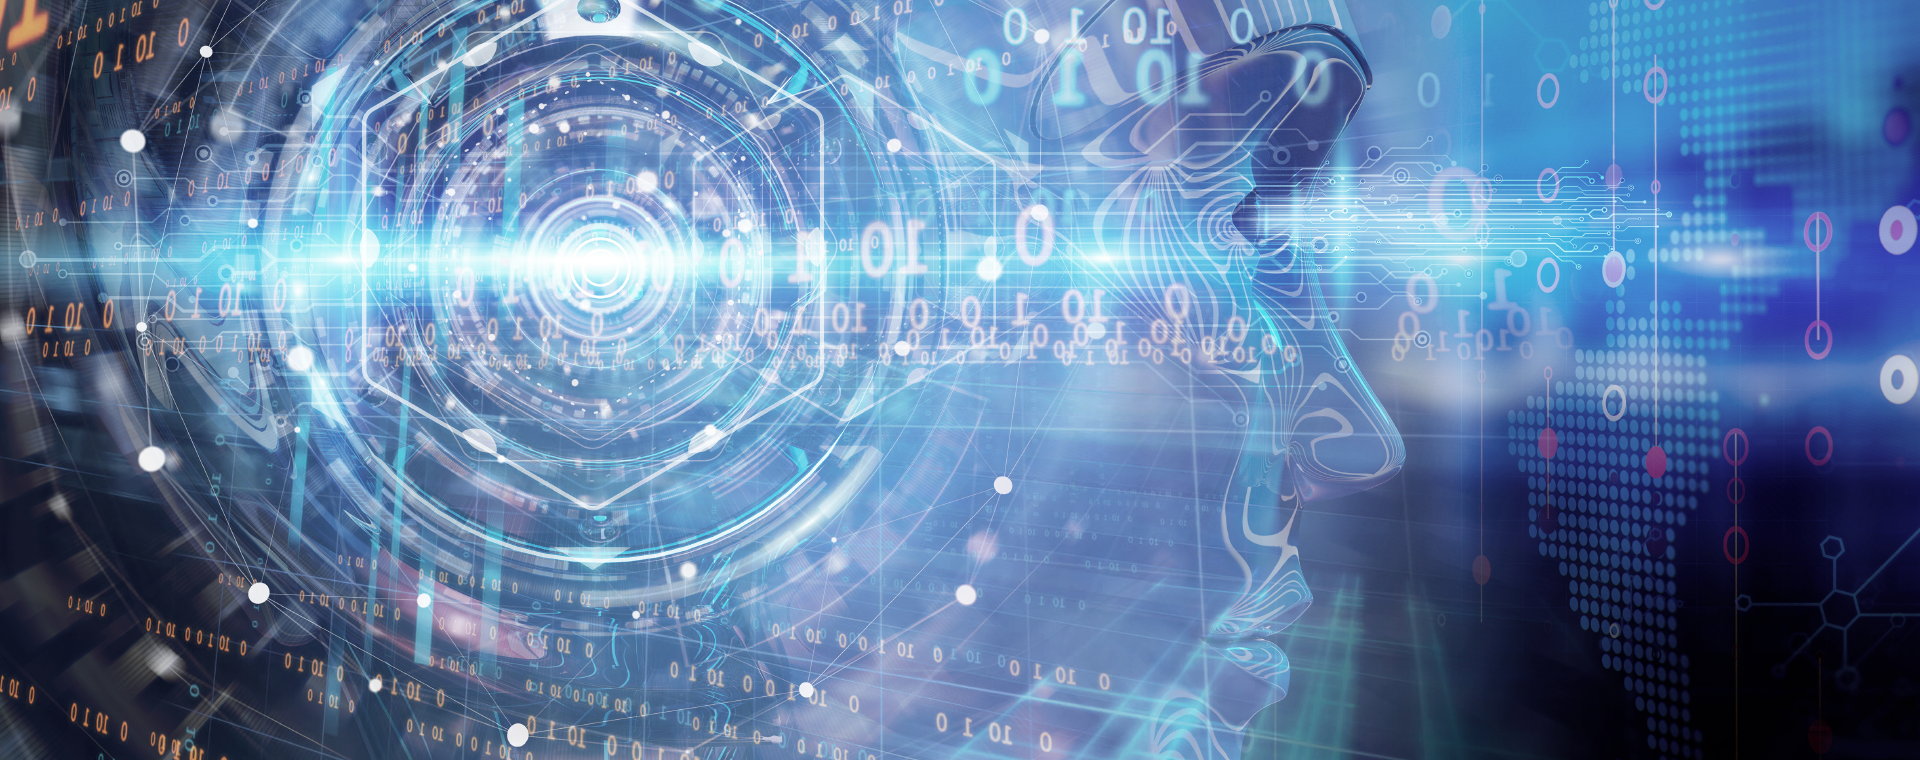 Machine Vision and Advanced Analytics: solutions for a zero-defect manufacturing